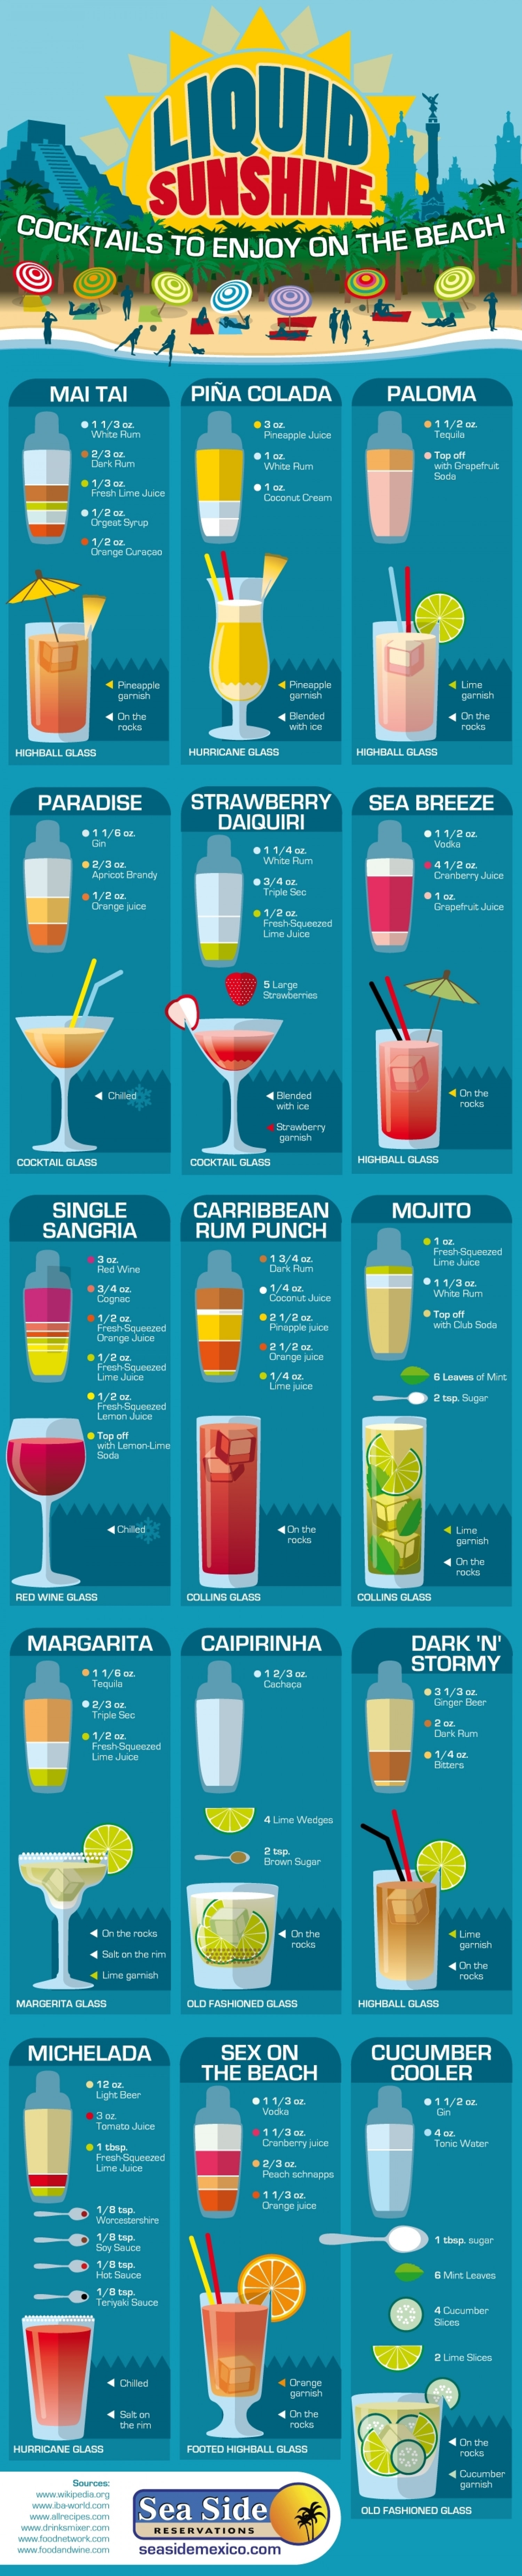 Liquid Sunshine: Cocktails to Enjoy on the Beach - SeaSideMexico.com - Infographic